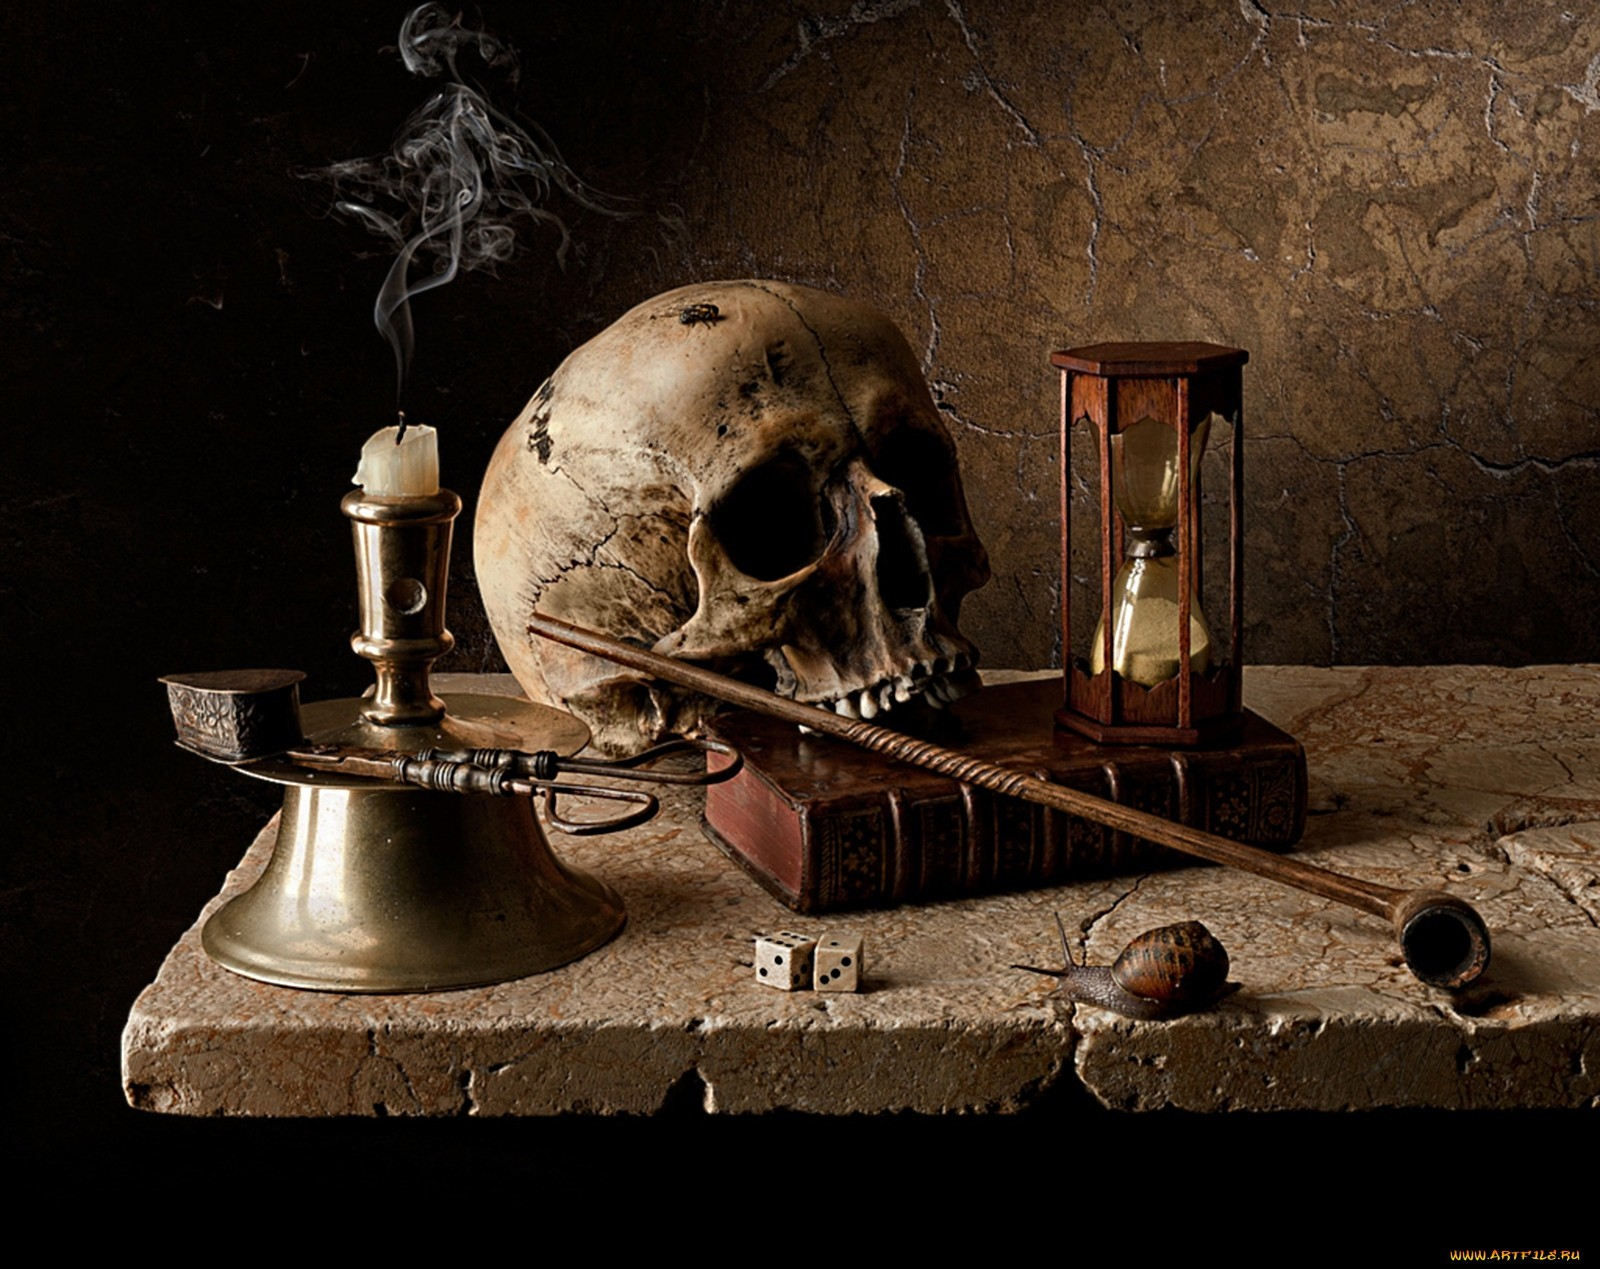 18593 download wallpaper Background, Art Photo, Death, Still Life screensavers and pictures for free